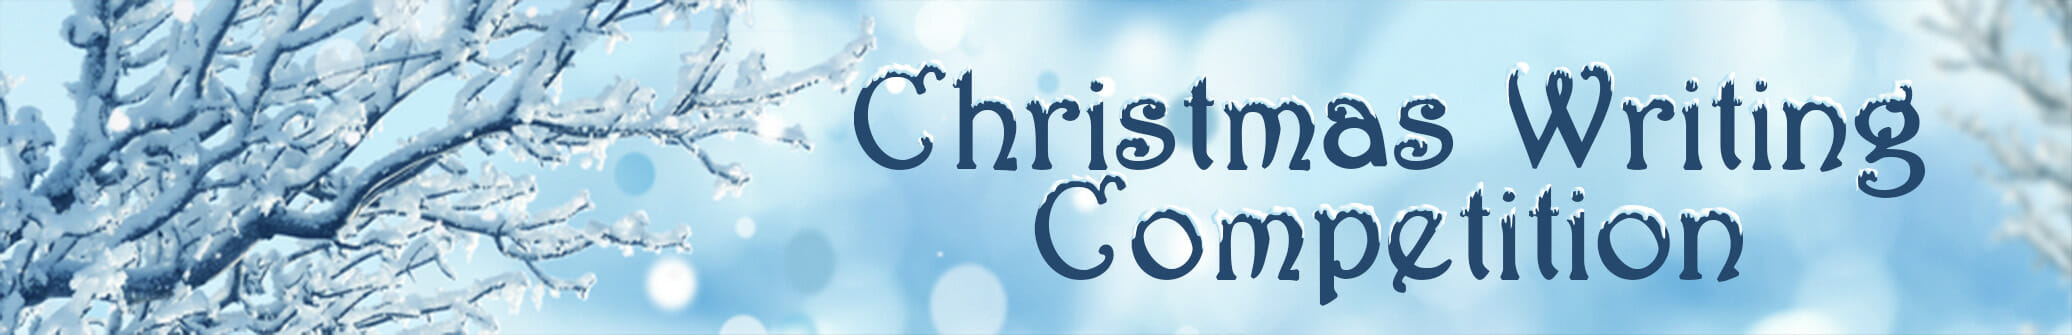 Christmas Writing Competition Snow Queen Story